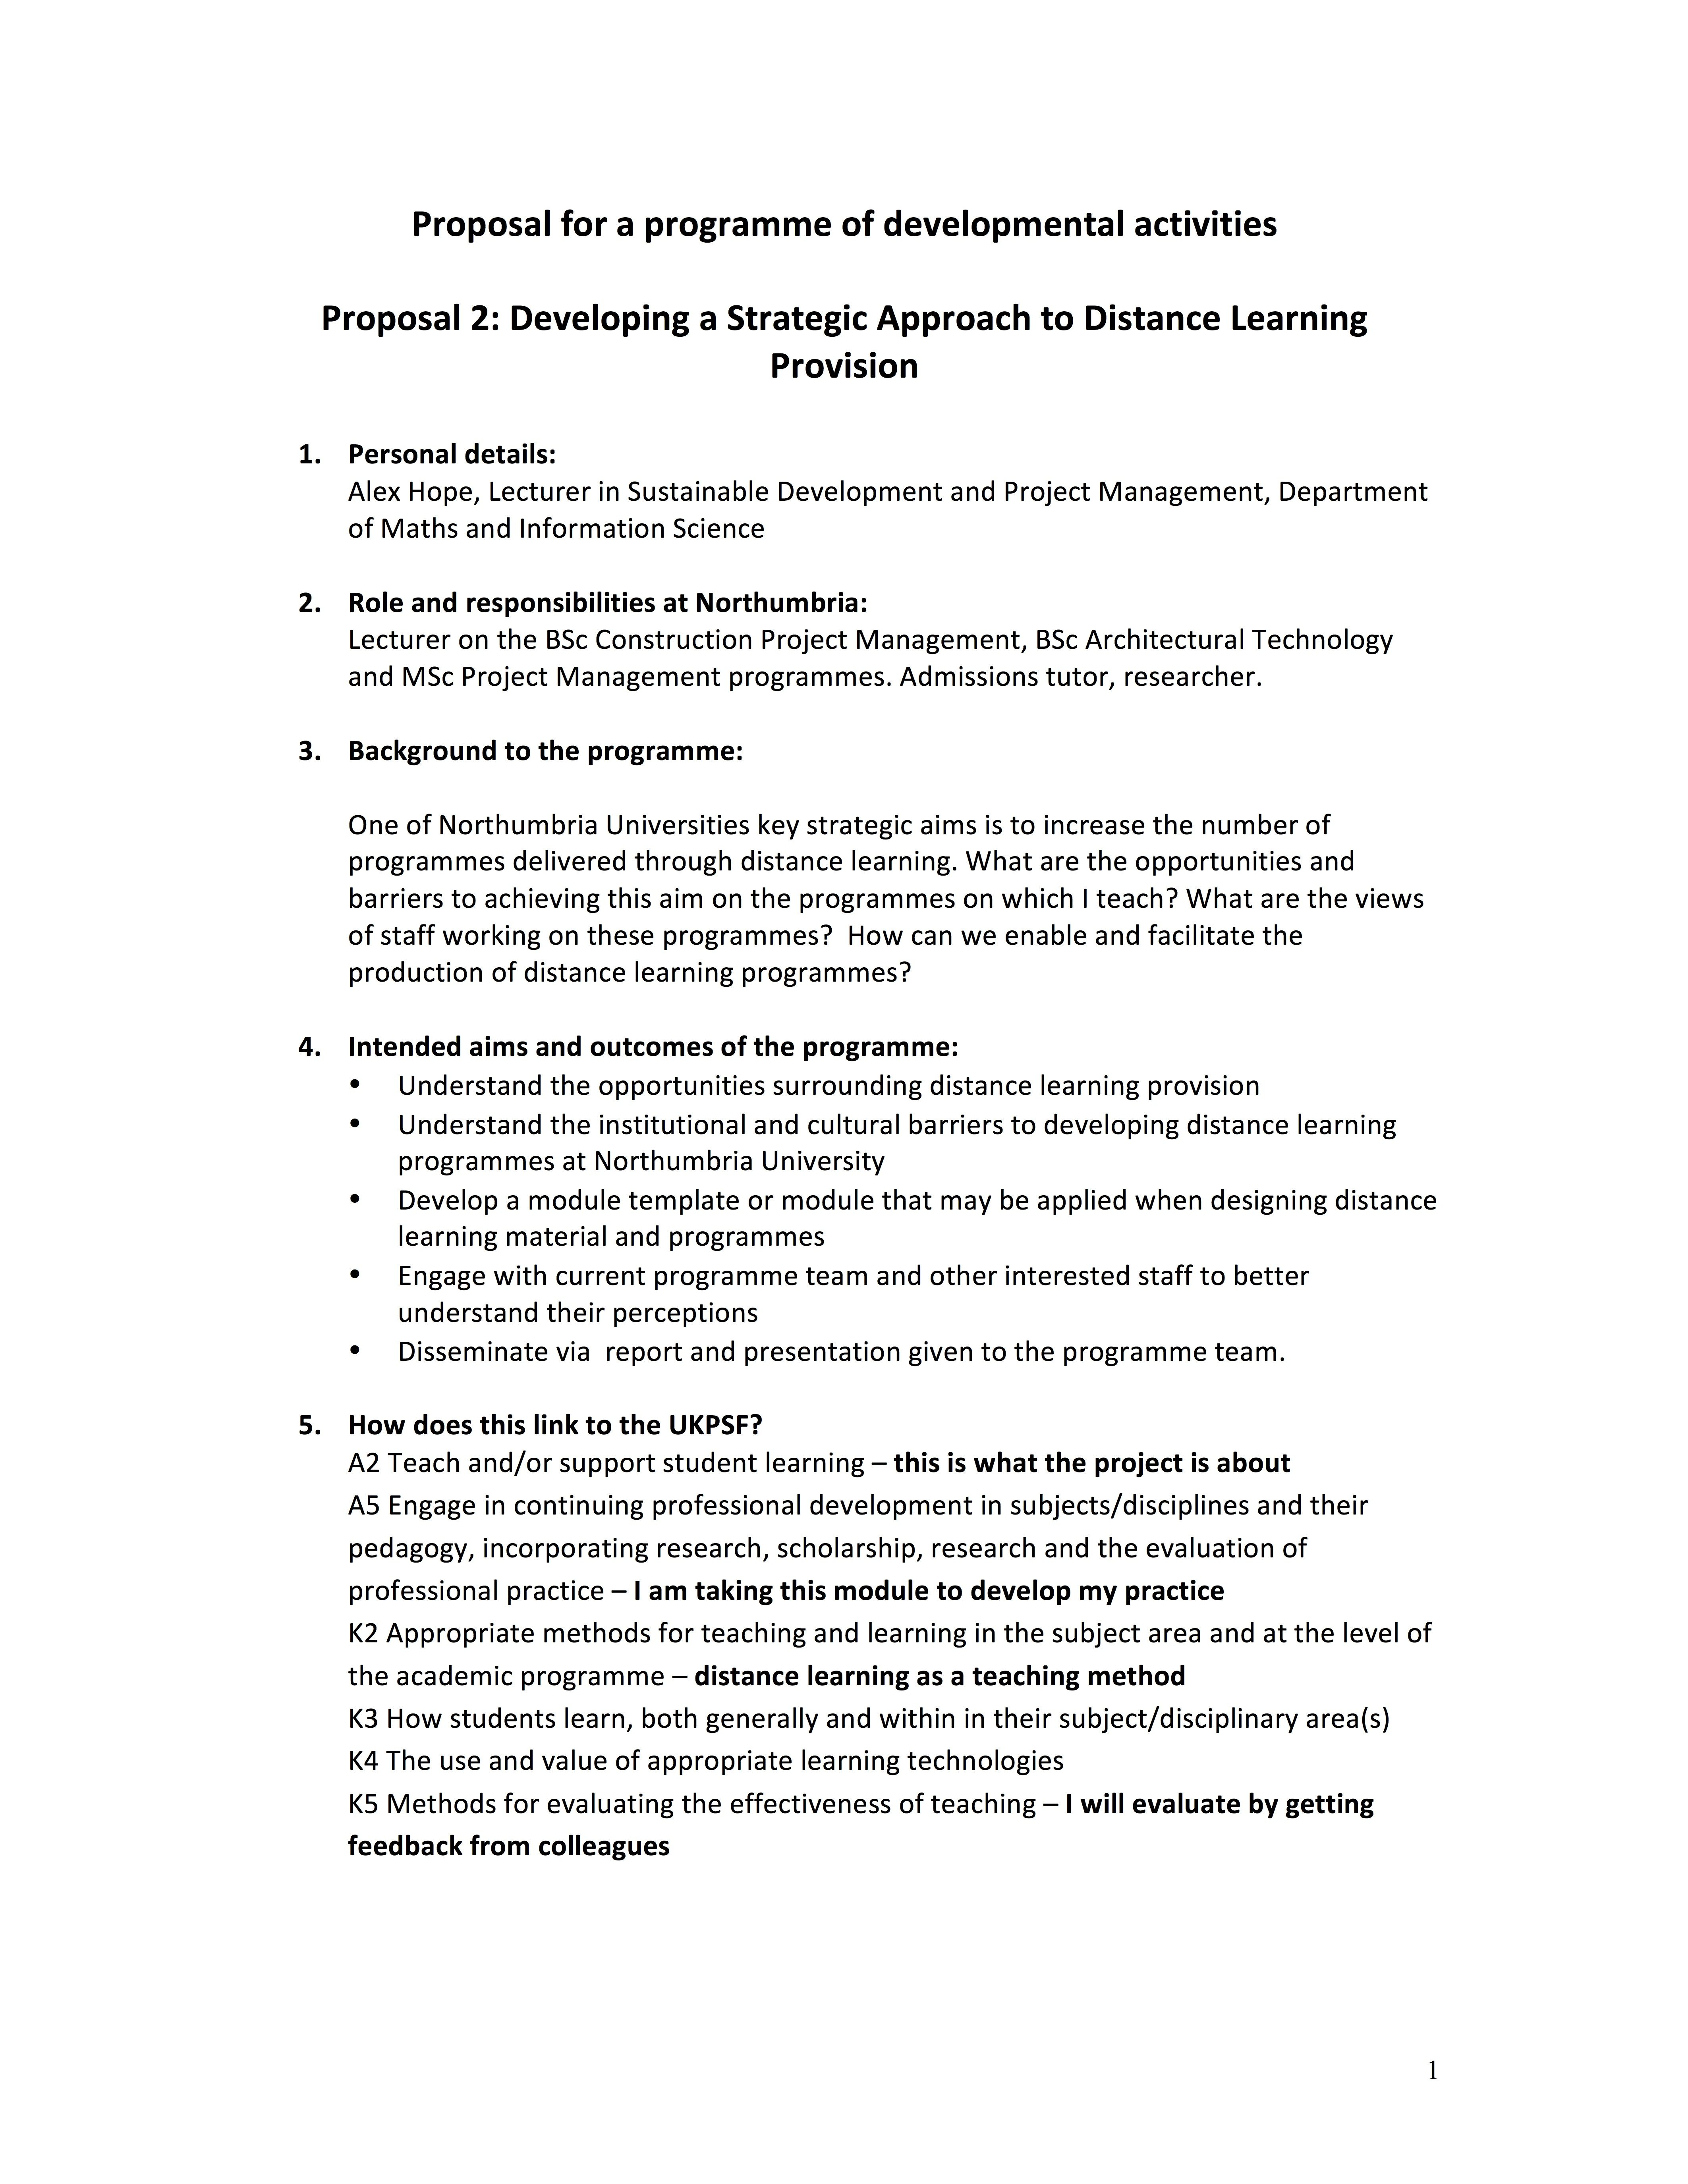 A swot analysis of existing distance learning provision on the msc a swot analysis of existing distance learning provision on the msc project management programmes professional practice in higher education 1 pinterest fandeluxe Choice Image